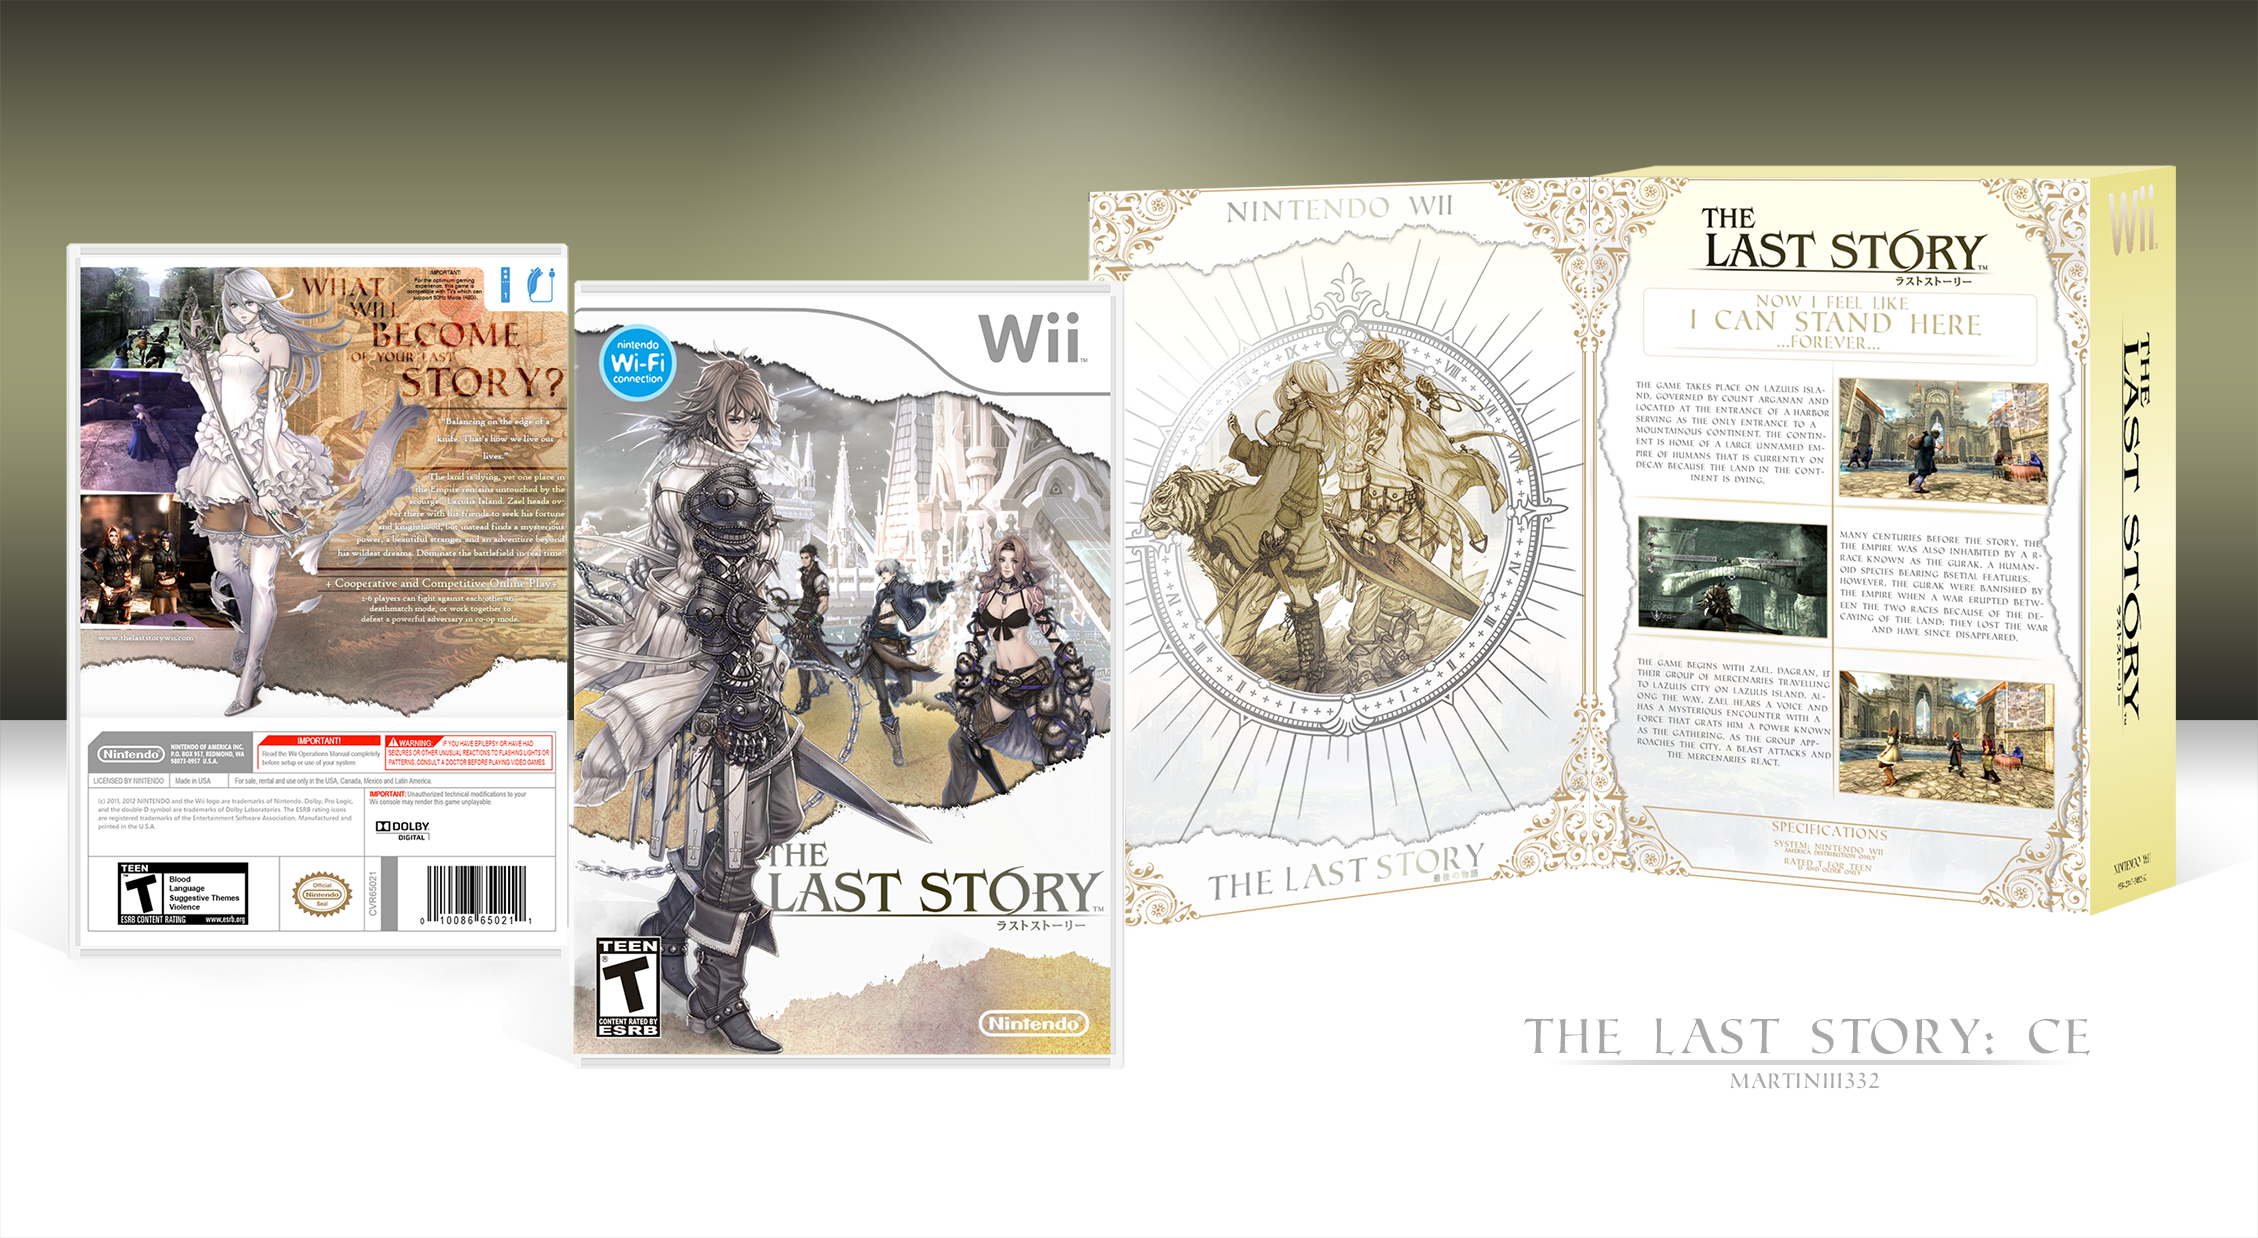 The Last Story box cover